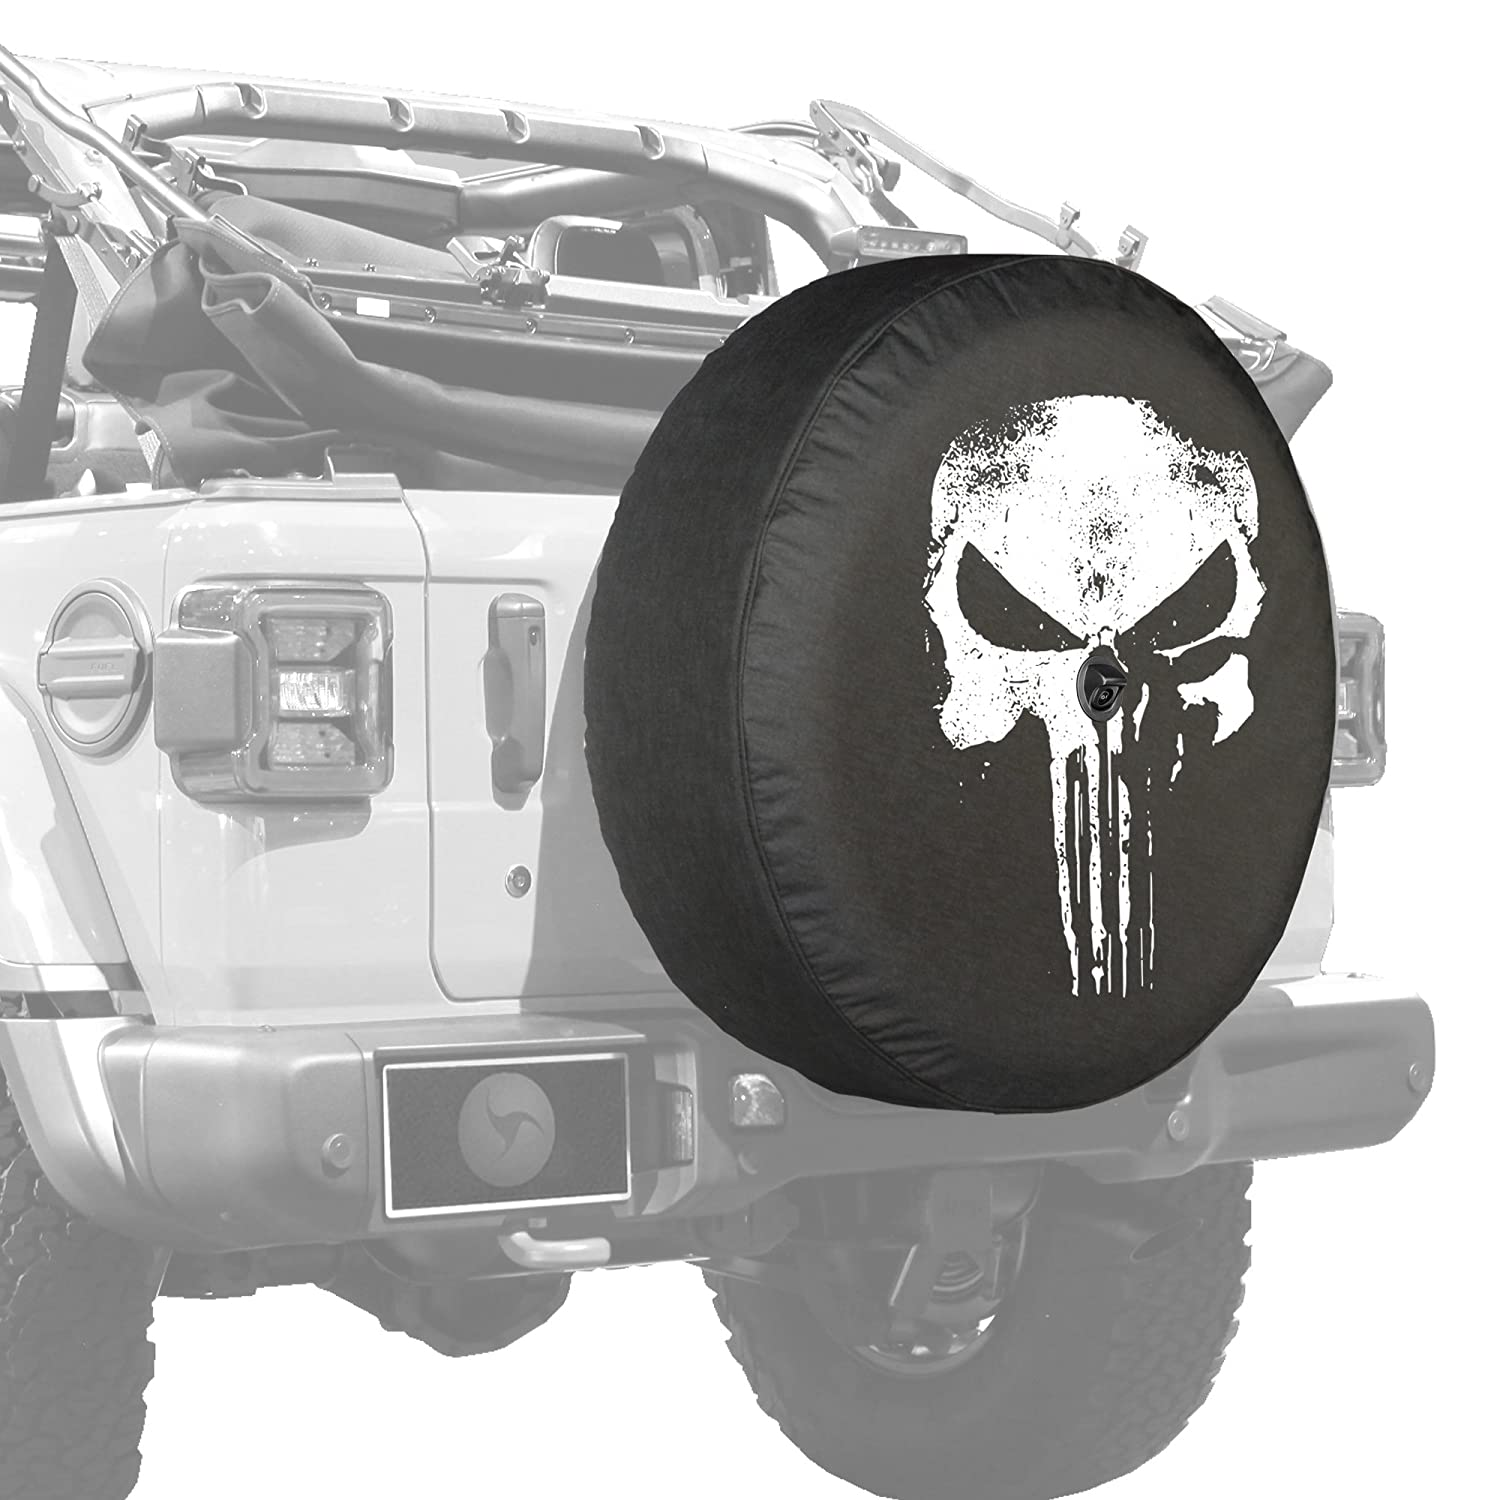 32 Soft JL Tire Cover for use with 2018-2019 Jeep Wrangler JL Sport /& Sahara - Distressed Punisher Skull Boomerang with Back-up Camera